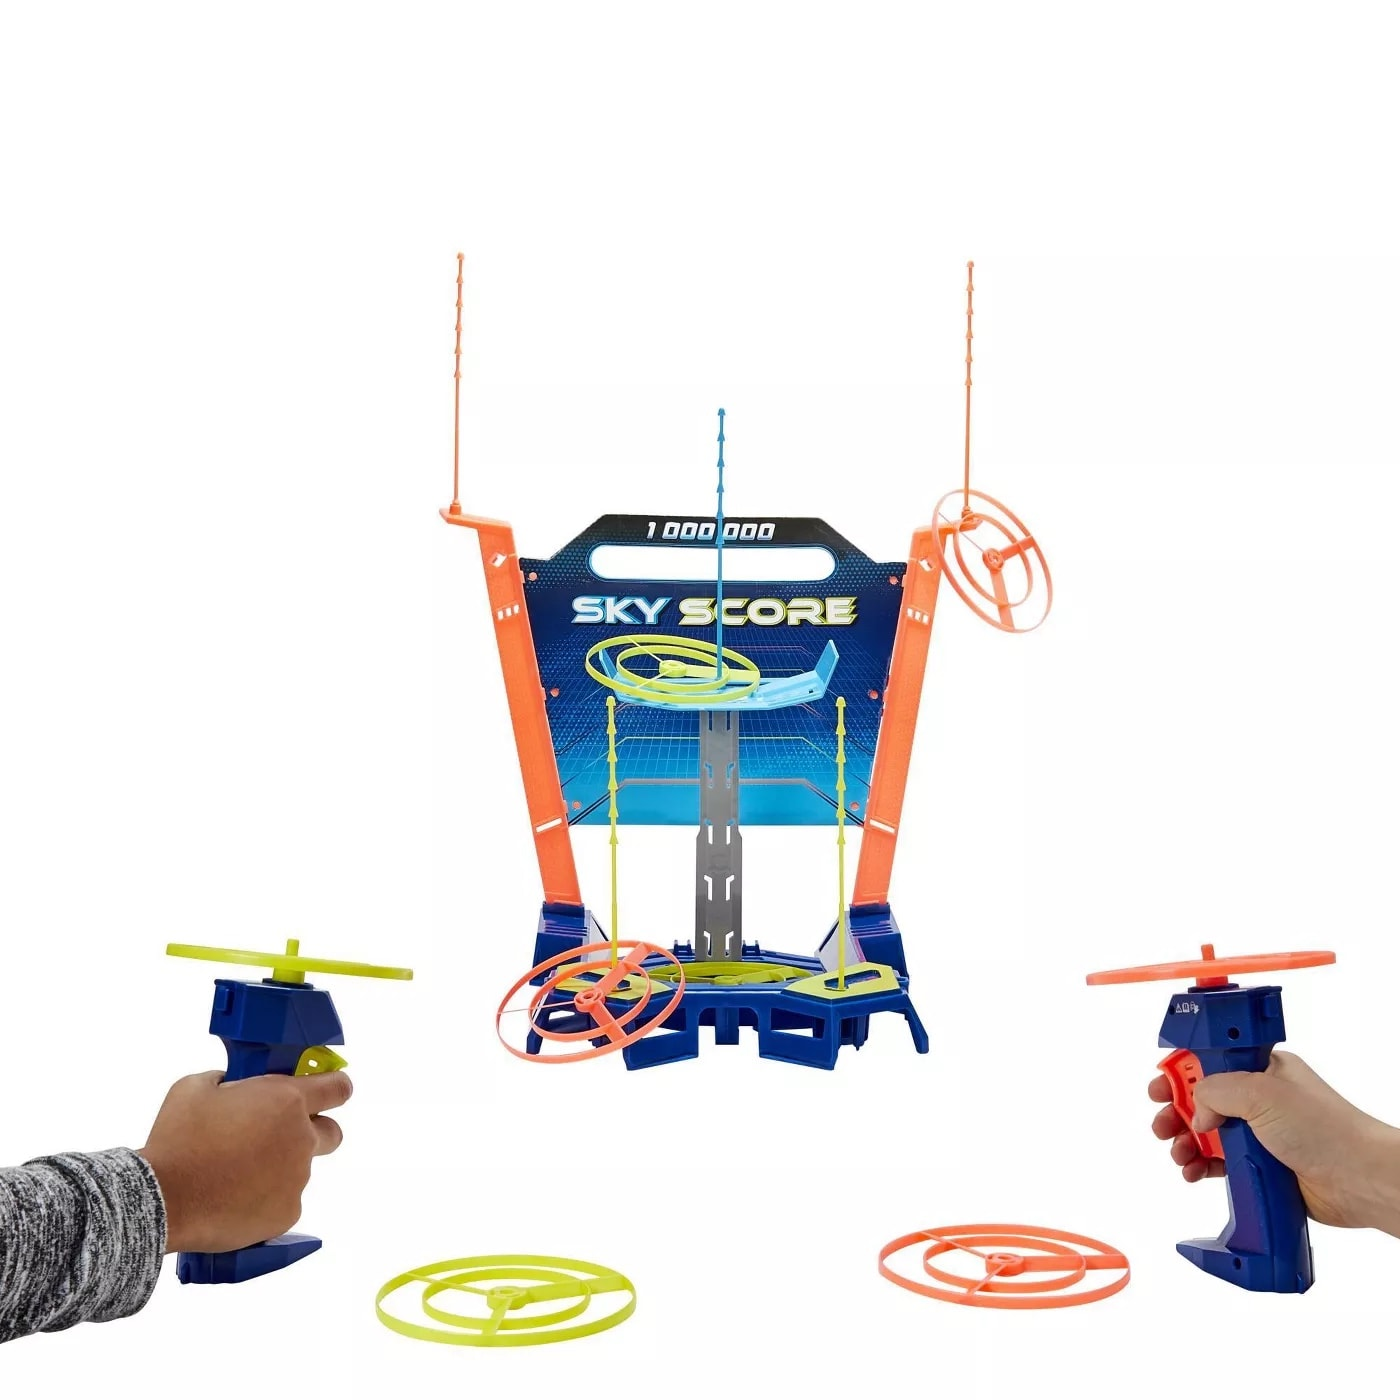 Sky Score Game Hasbro unit showing game play in action